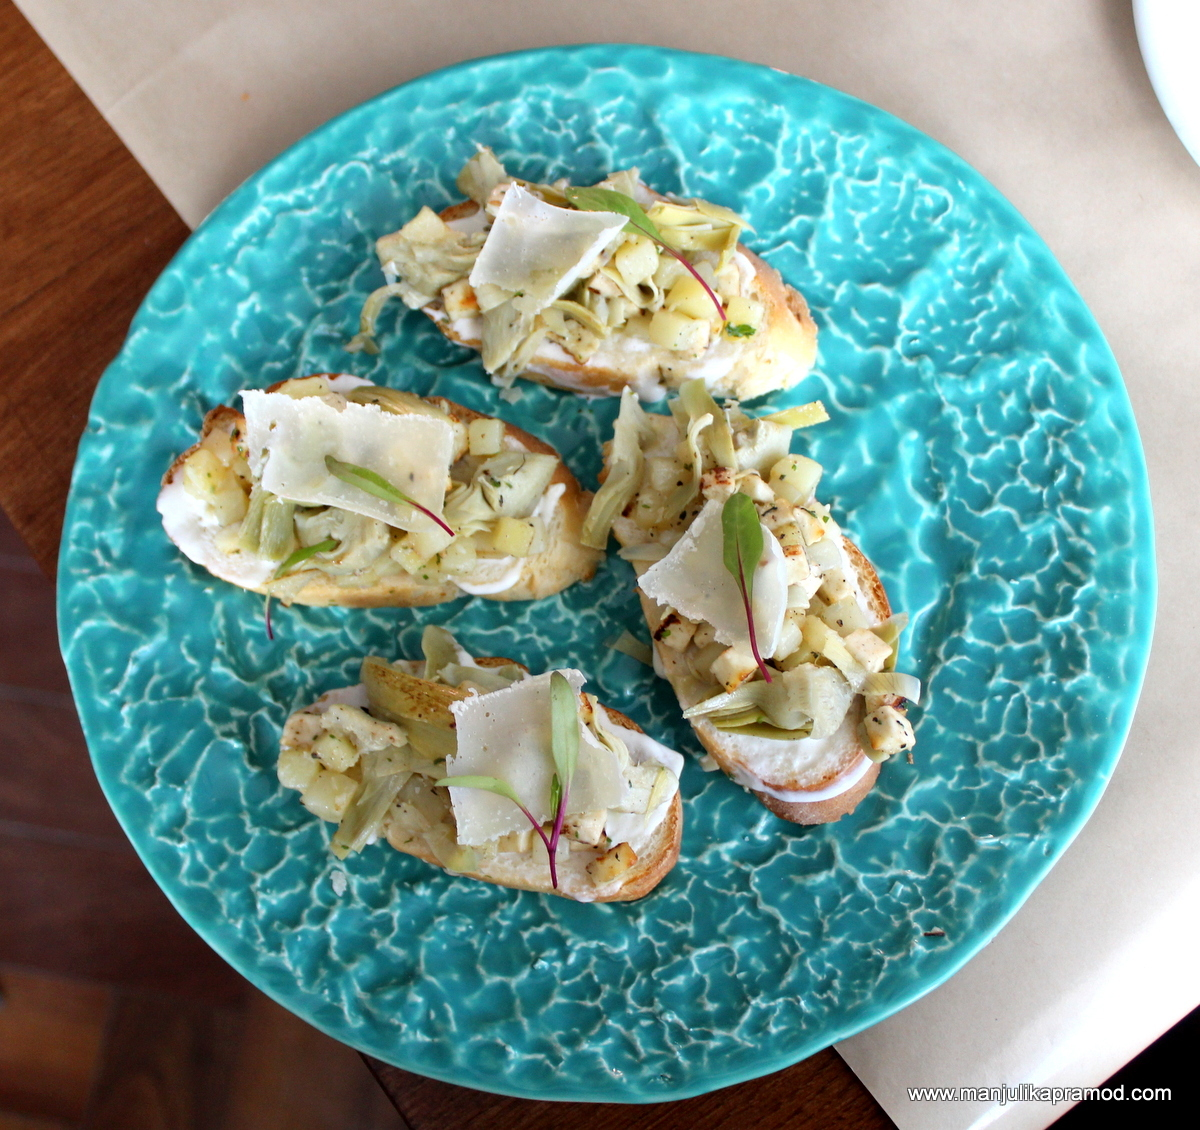 Artichoke & Patato Bruschetta, AMusehouse, review